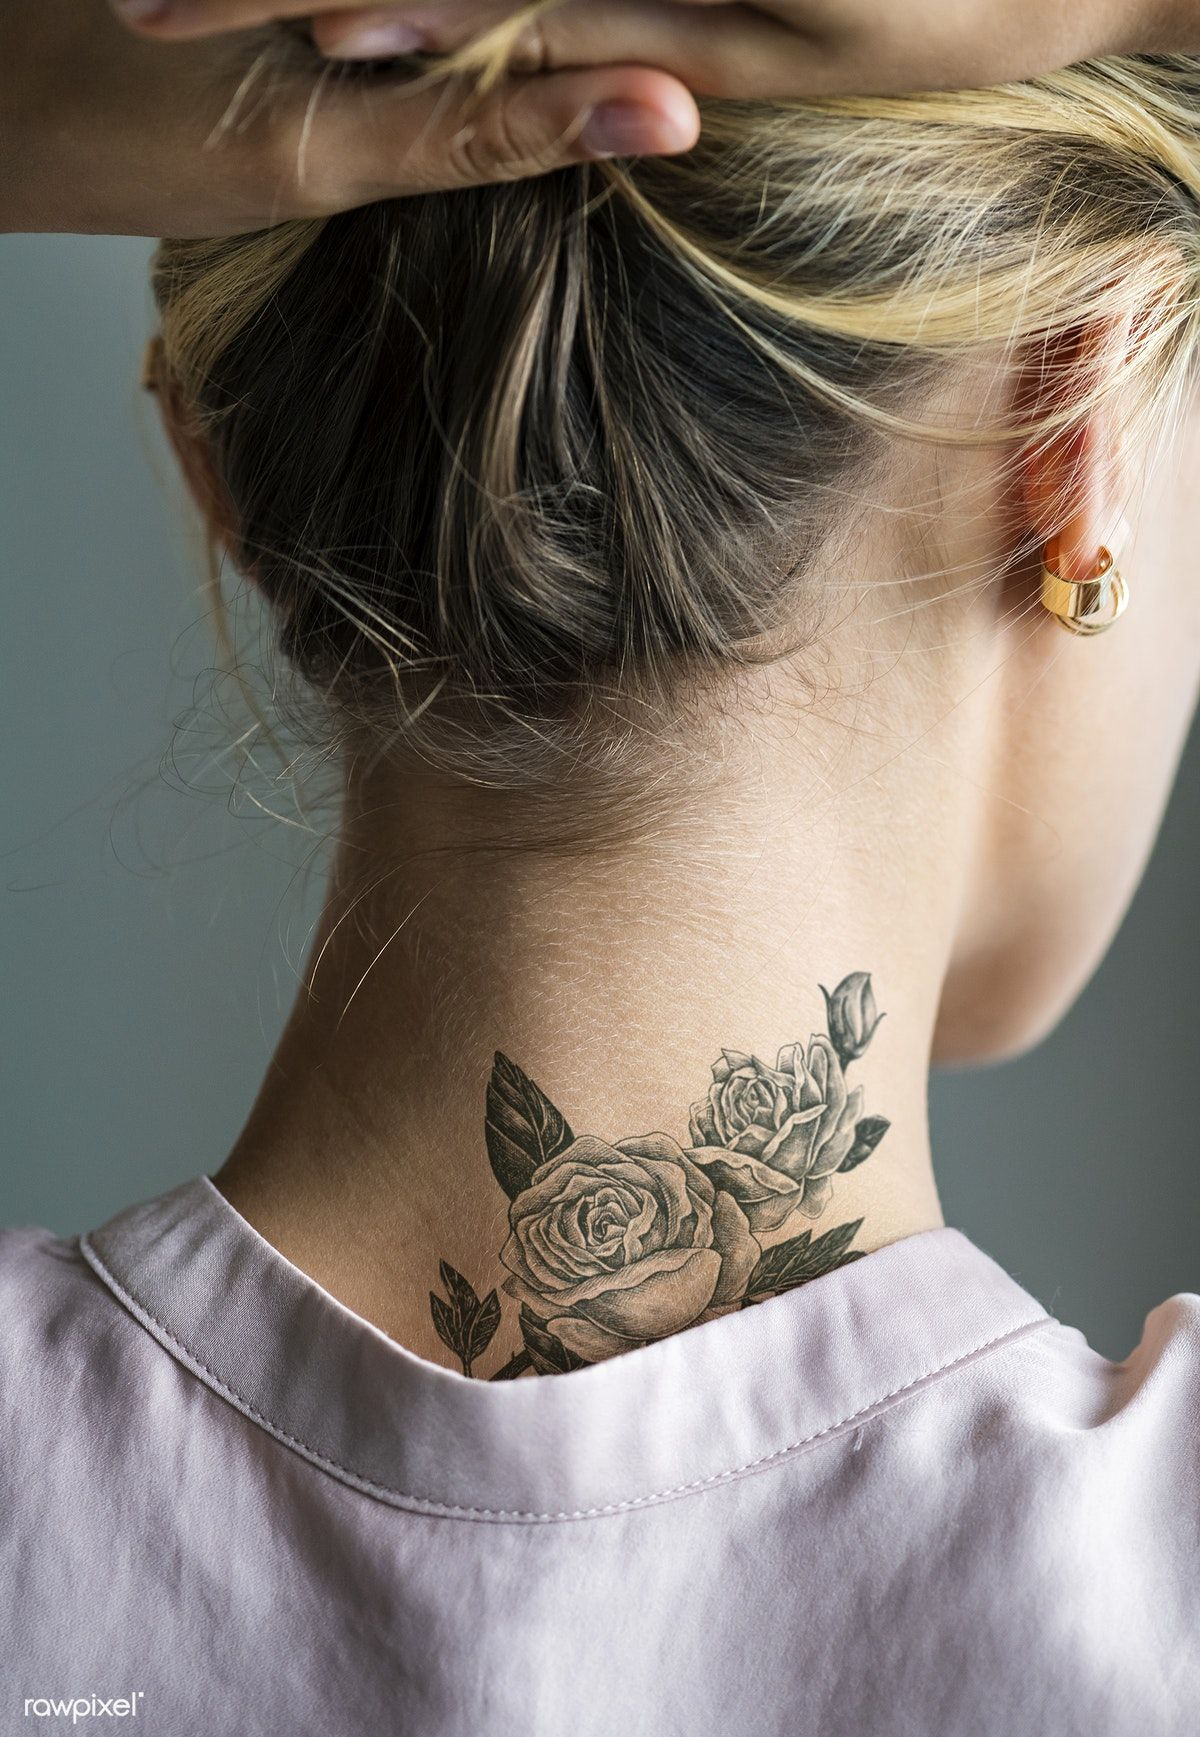 Back Neck Tattoo Of A Woman Premium Image By Rawpixel Com Back Of Neck Tattoo Best Neck Tattoos Neck Tattoos Women